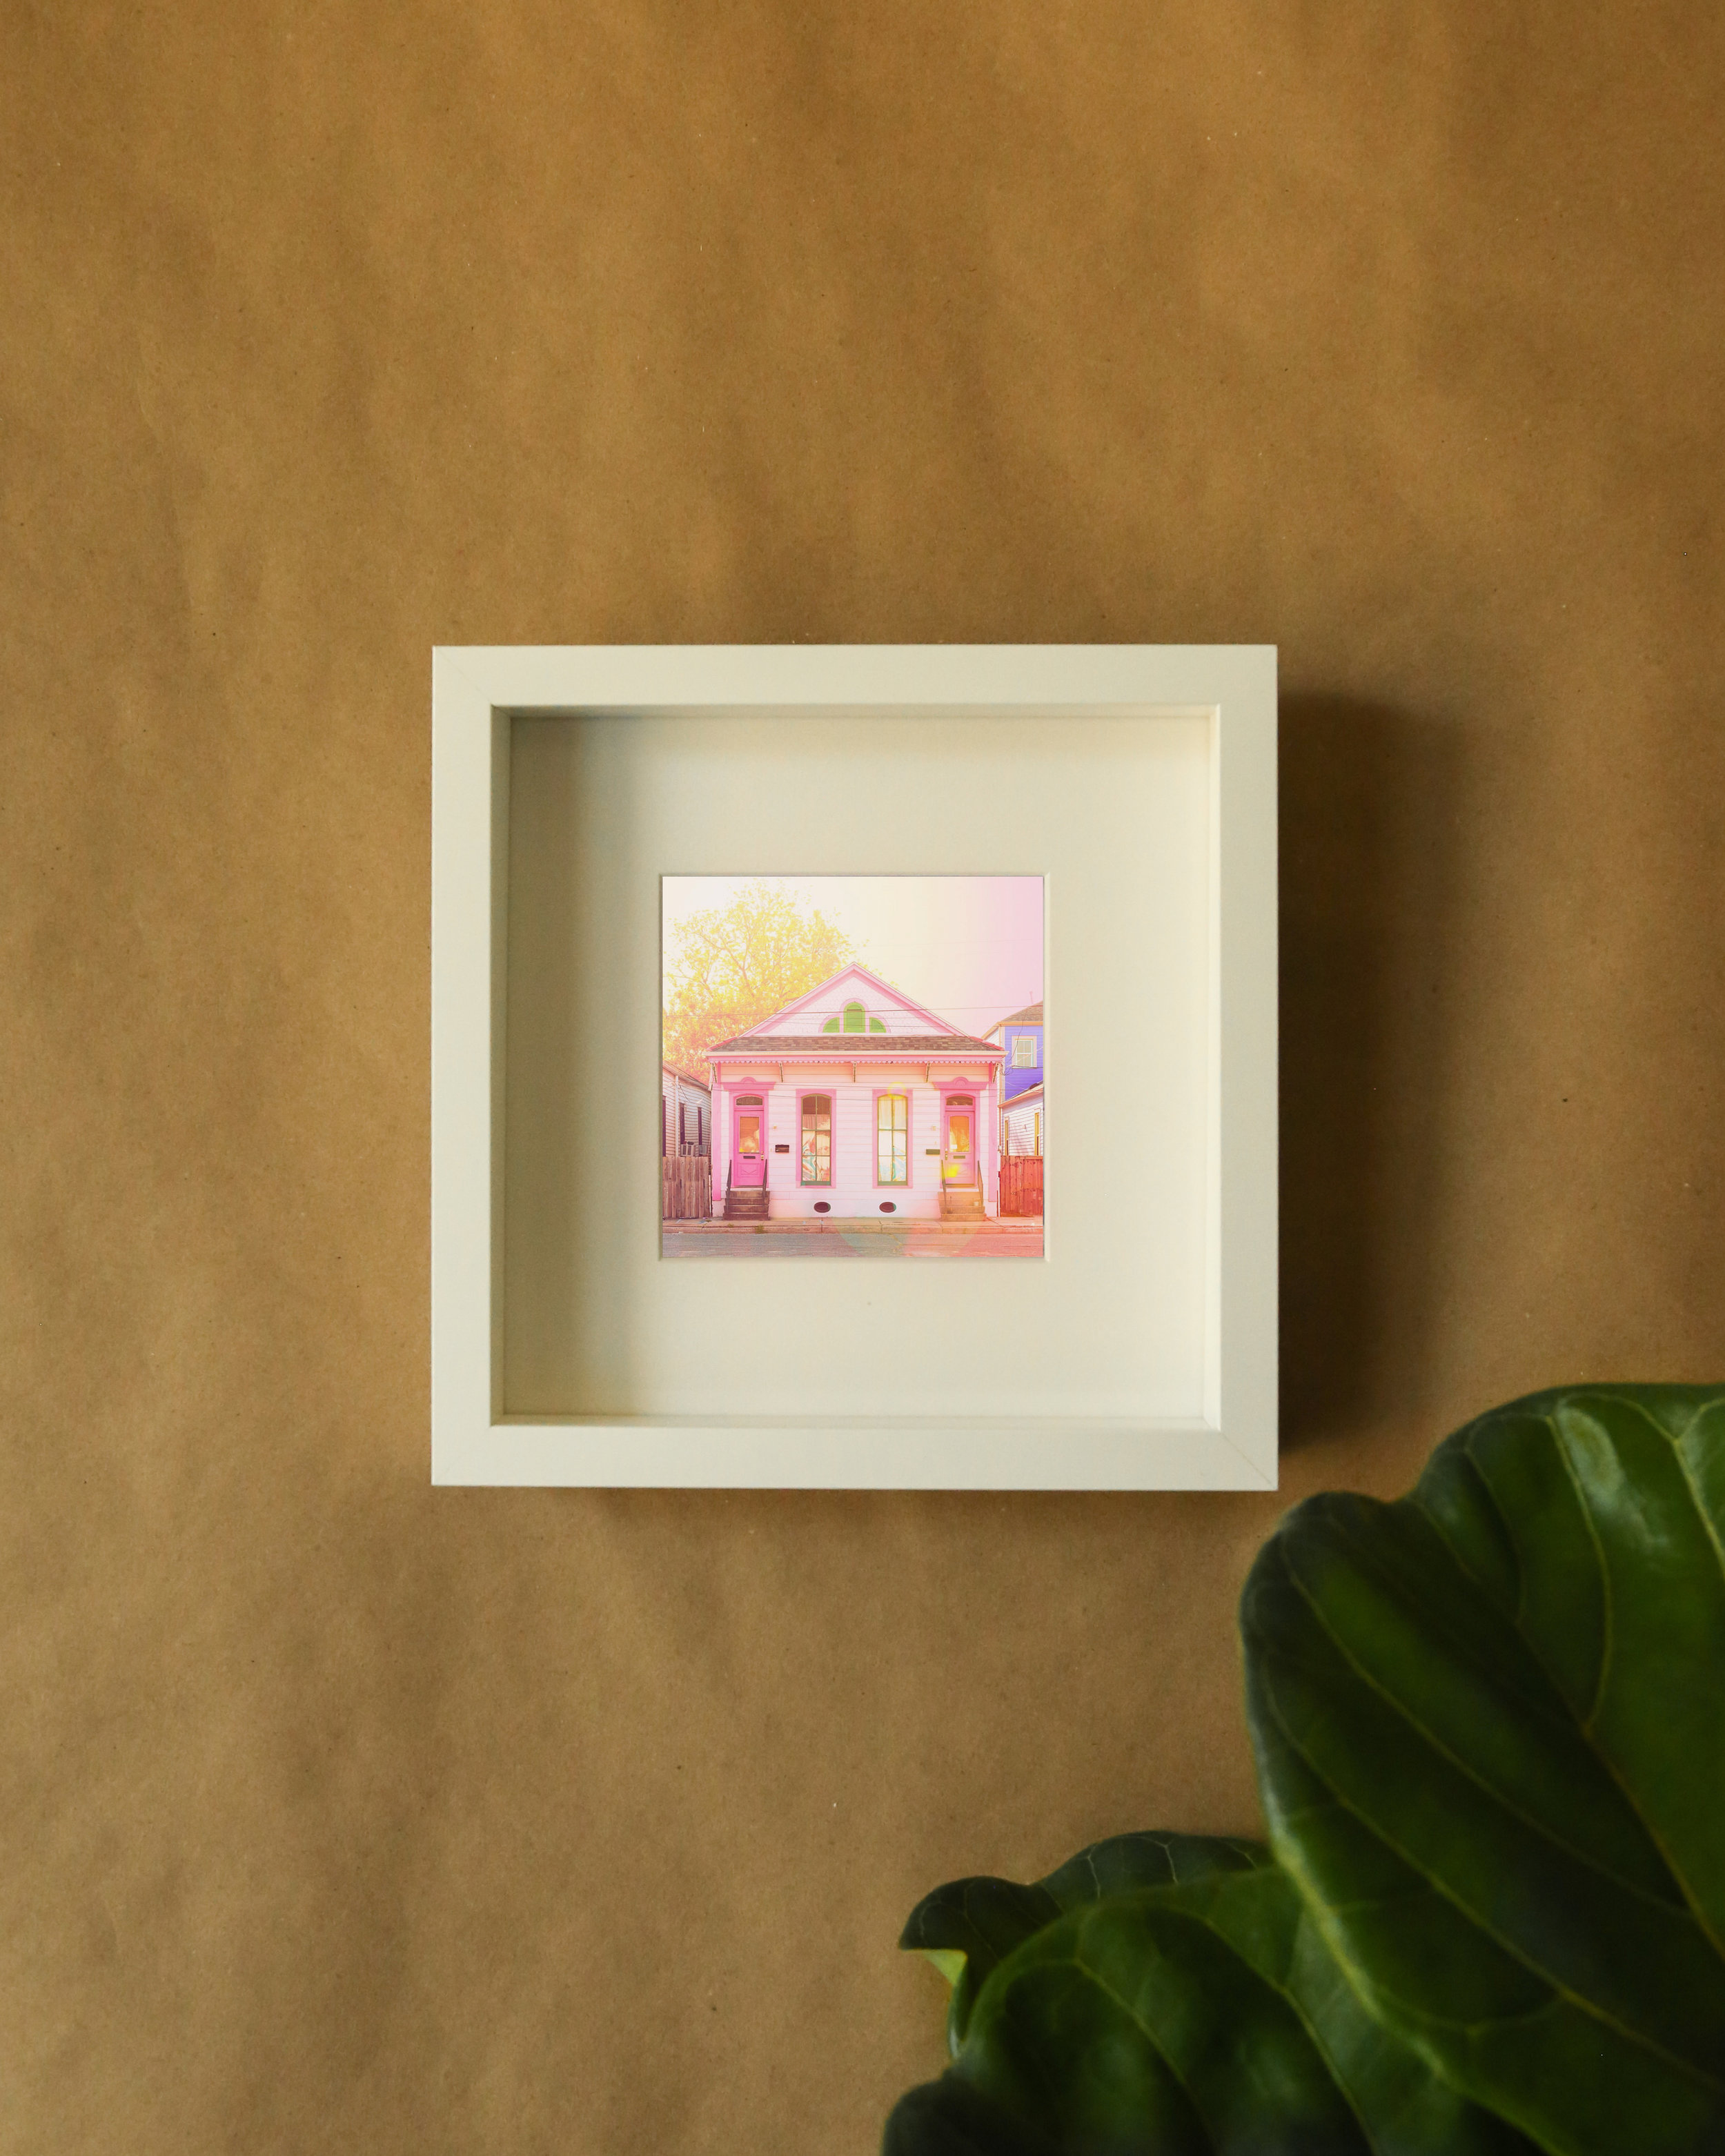 pink shotgun home, framed print